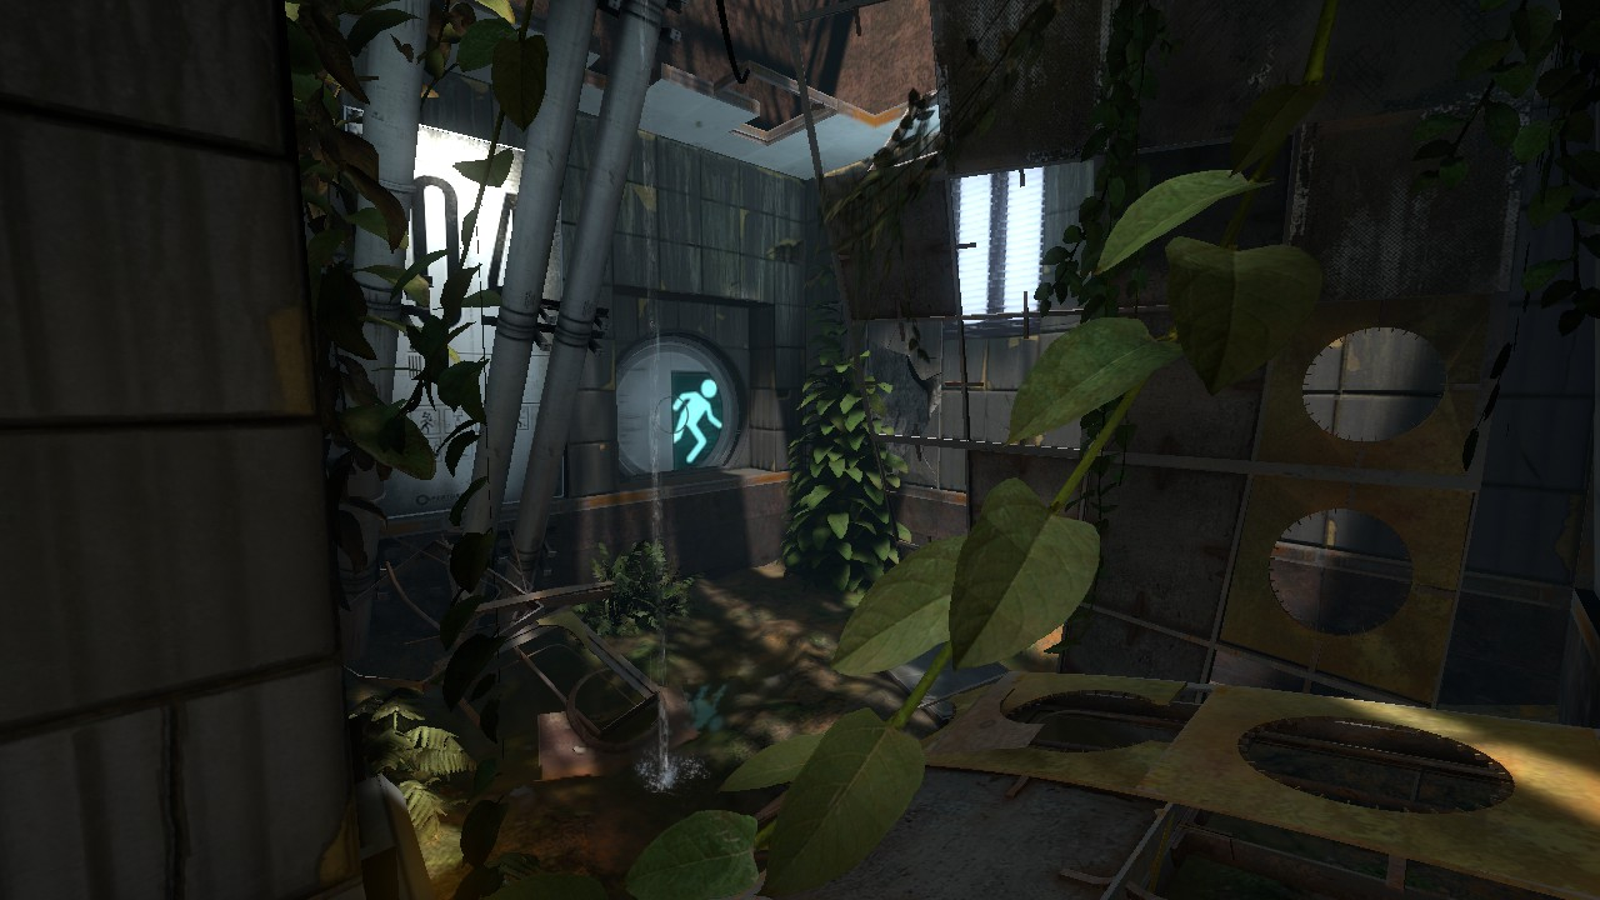 Destroyed Aperture seeks to explore the future ruins of the Portal series infamous research facility.